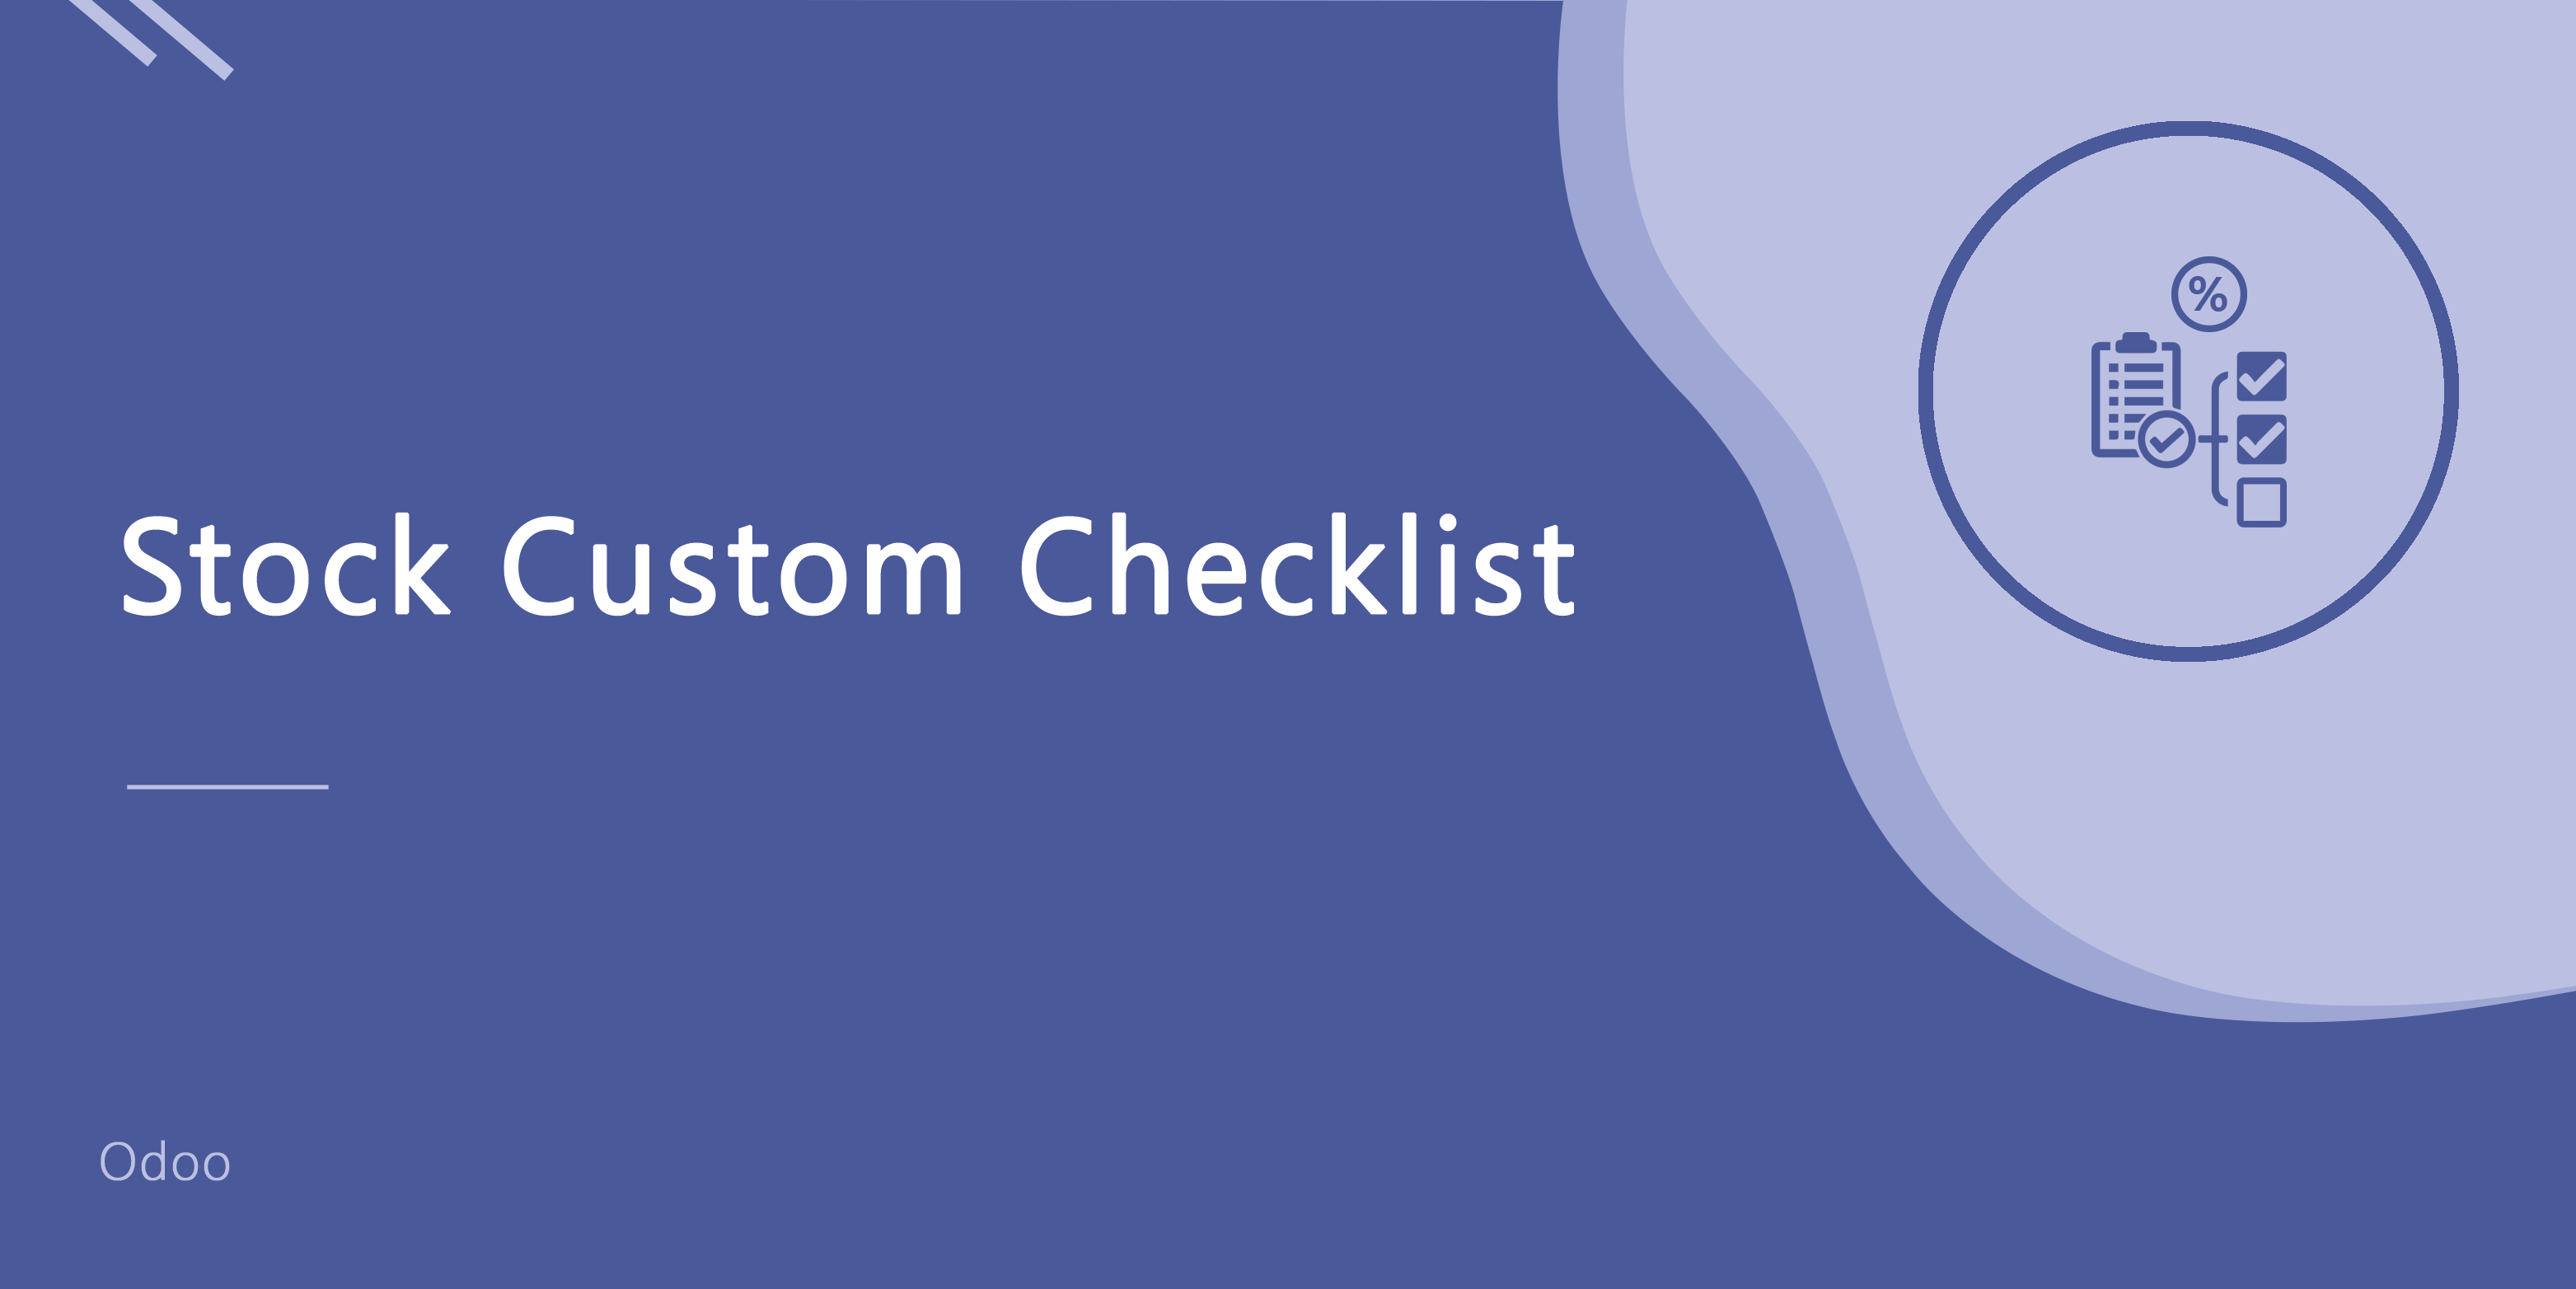 Stock Custom Checklist